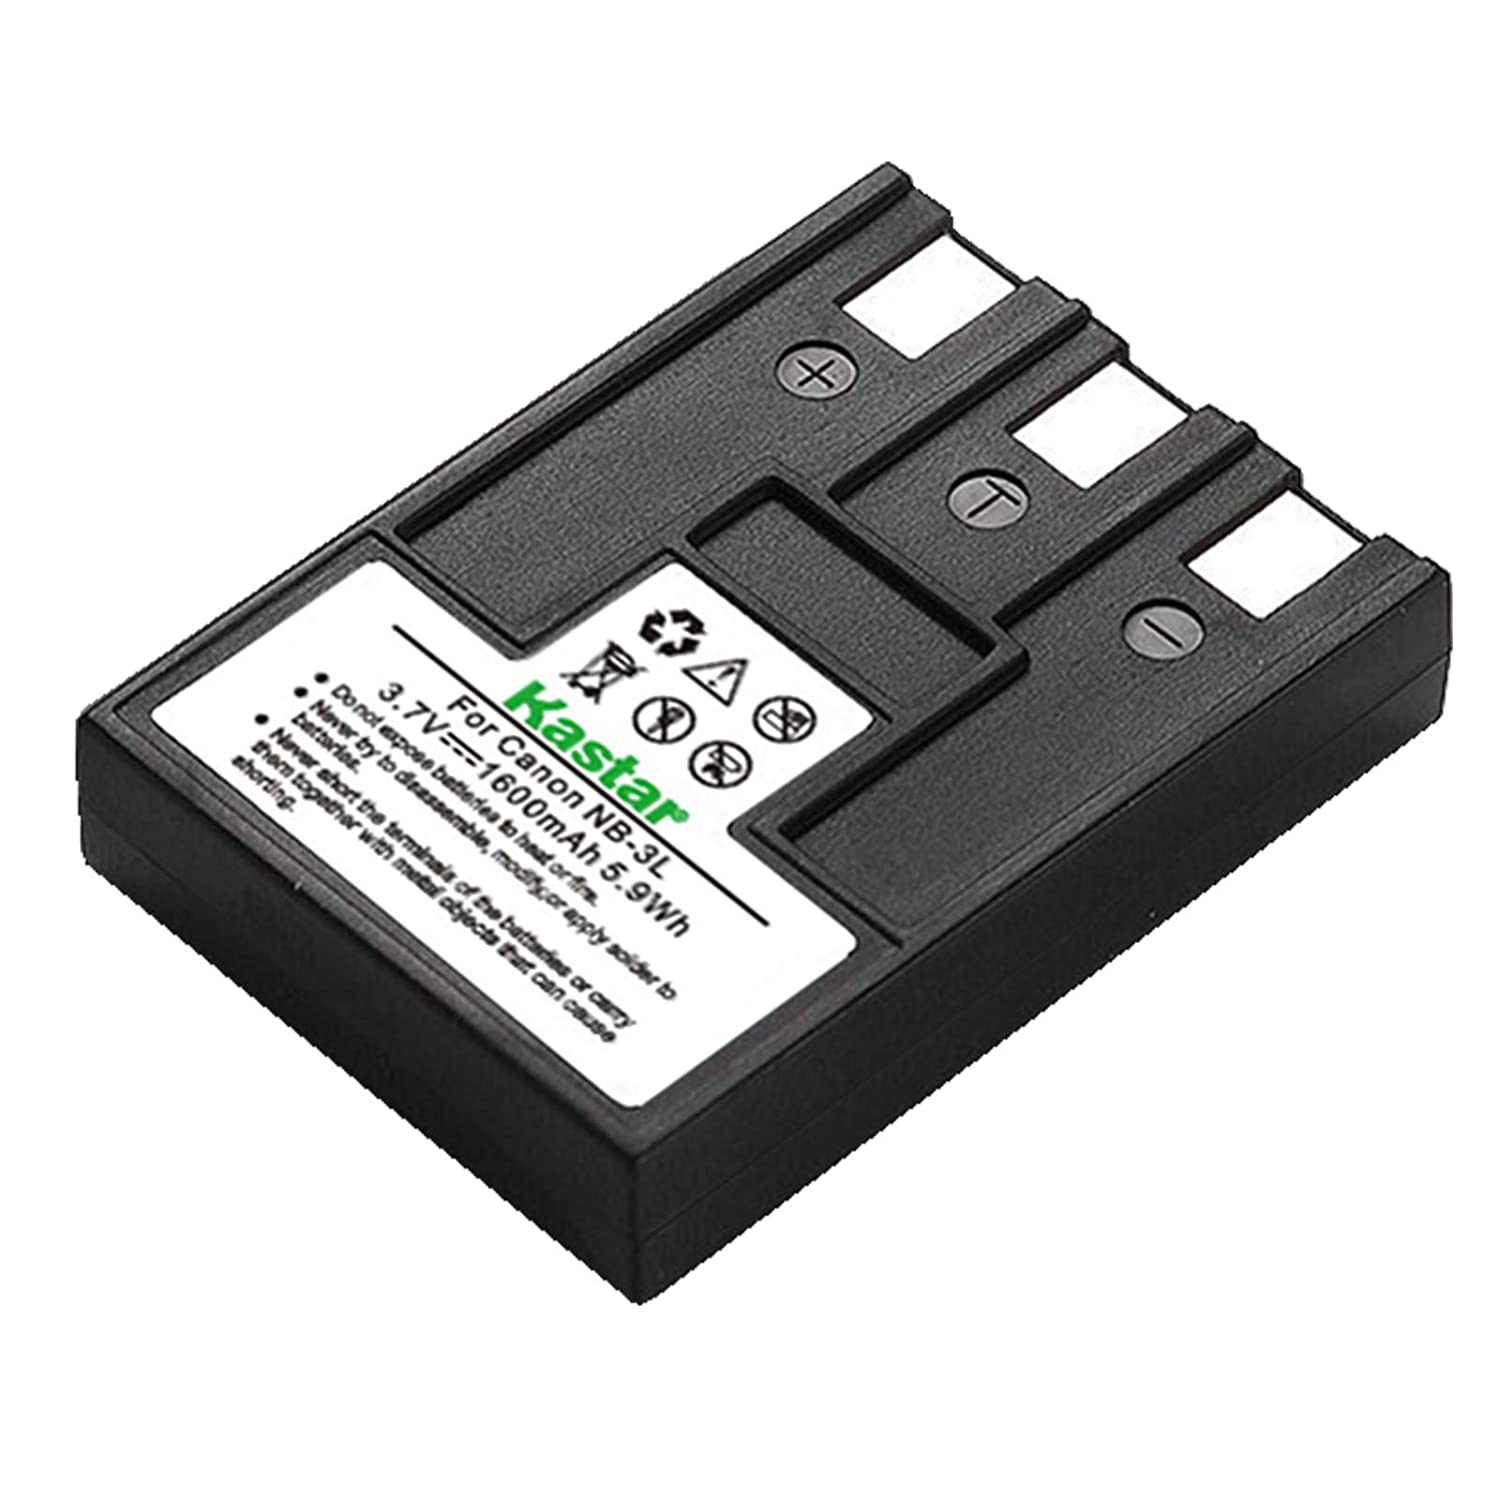 Buy Canon Powershot Sd550 Digital Camera Battery 800 Mah Replacement For Canon Nb 3l Battery Online At Low Price In India Kastar Camera Reviews Ratings Amazon In